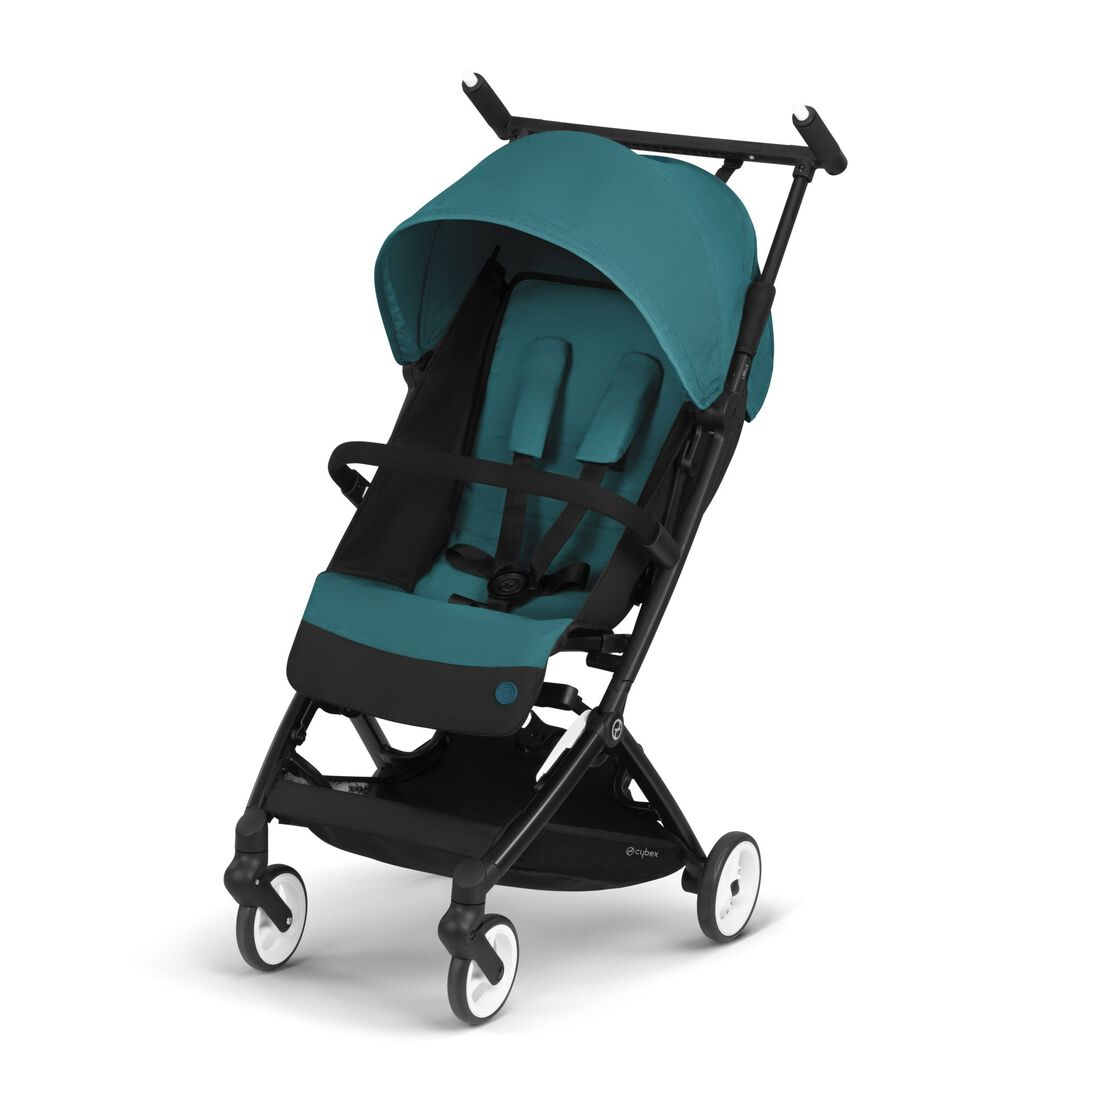 CYBEX Libelle - River Blue in River Blue large Bild 1